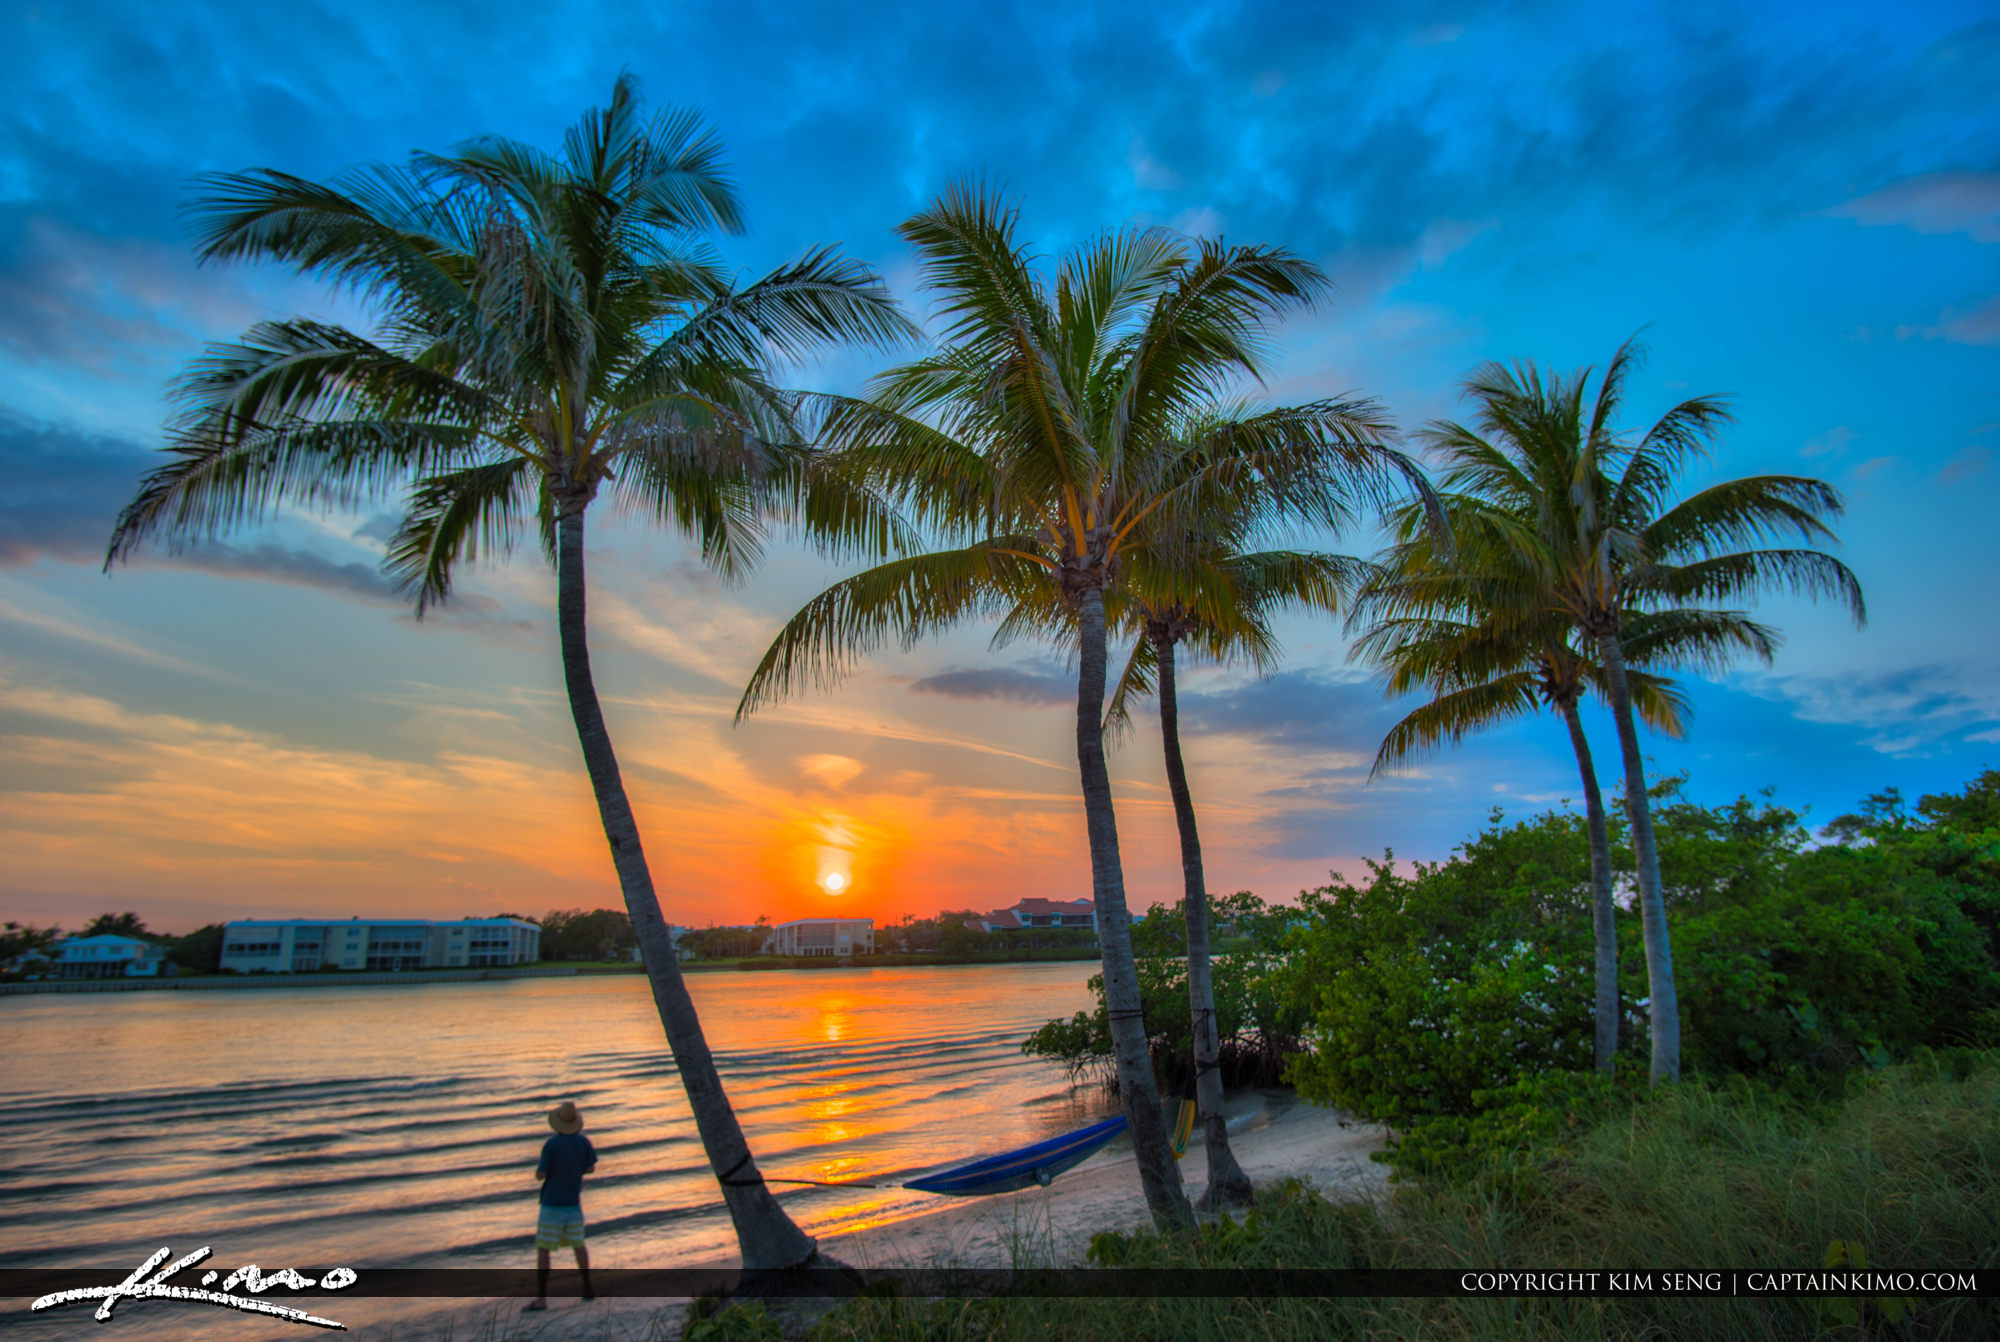 Jupiter Island Sunset along Waterway with Coconut Trees